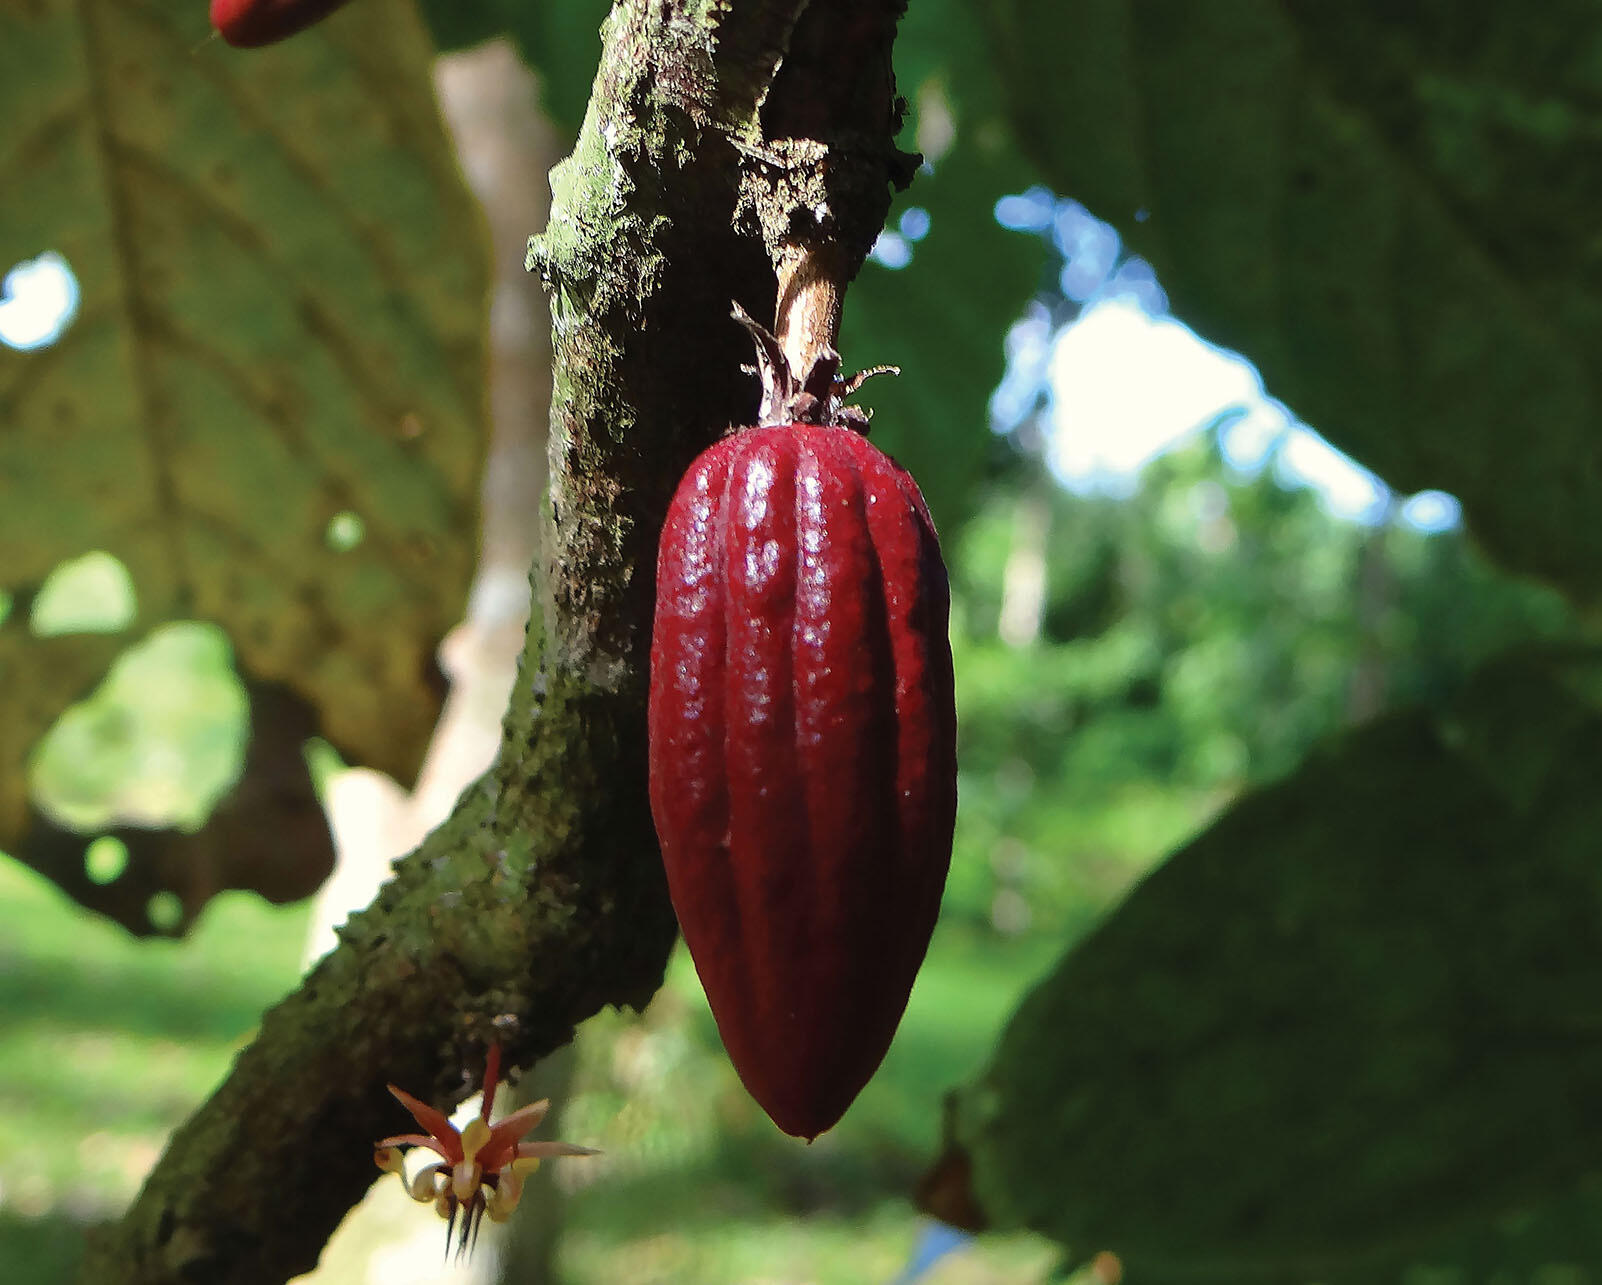 The pale flower on the trunk and large maroon fruit of the cacao plant (Theobroma cacao).